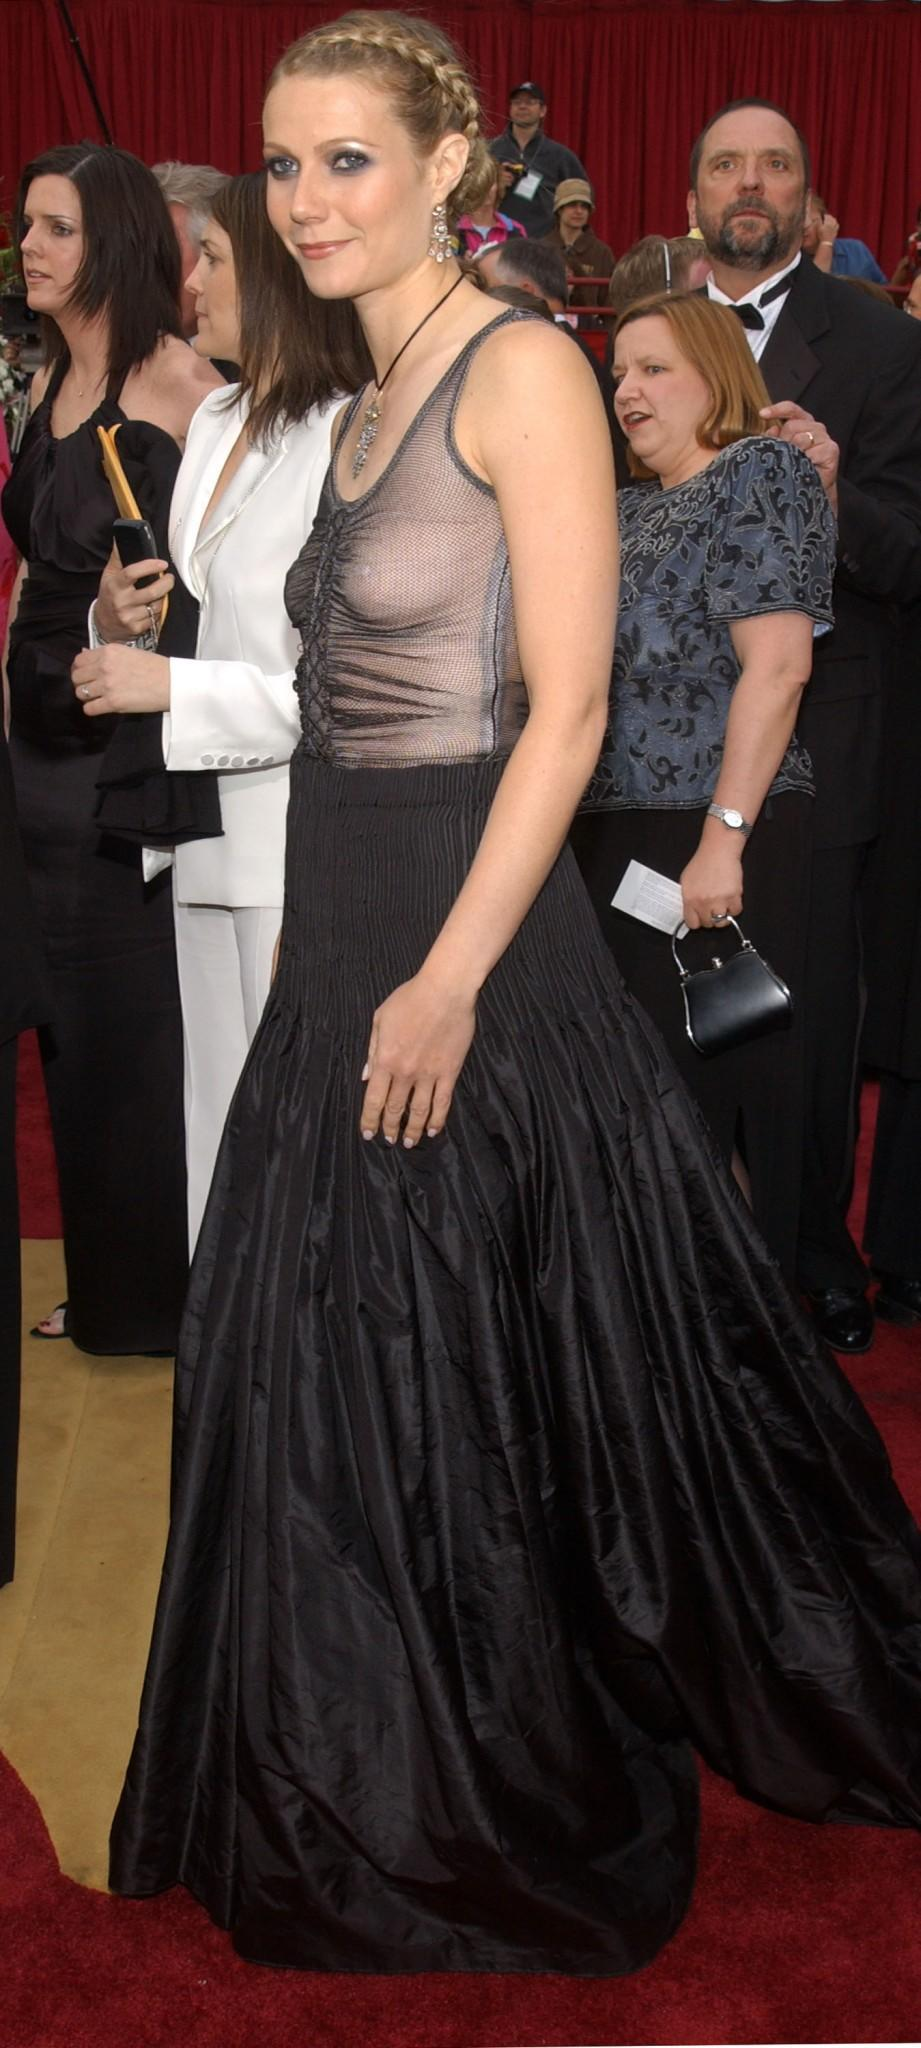 <p>That 1999 prom dress looks gorgeous compared to this creation for the 2002 Oscars. Bad luck, Paltrow.<em> [Photo: Vince Bucci/Getty]</em> </p>